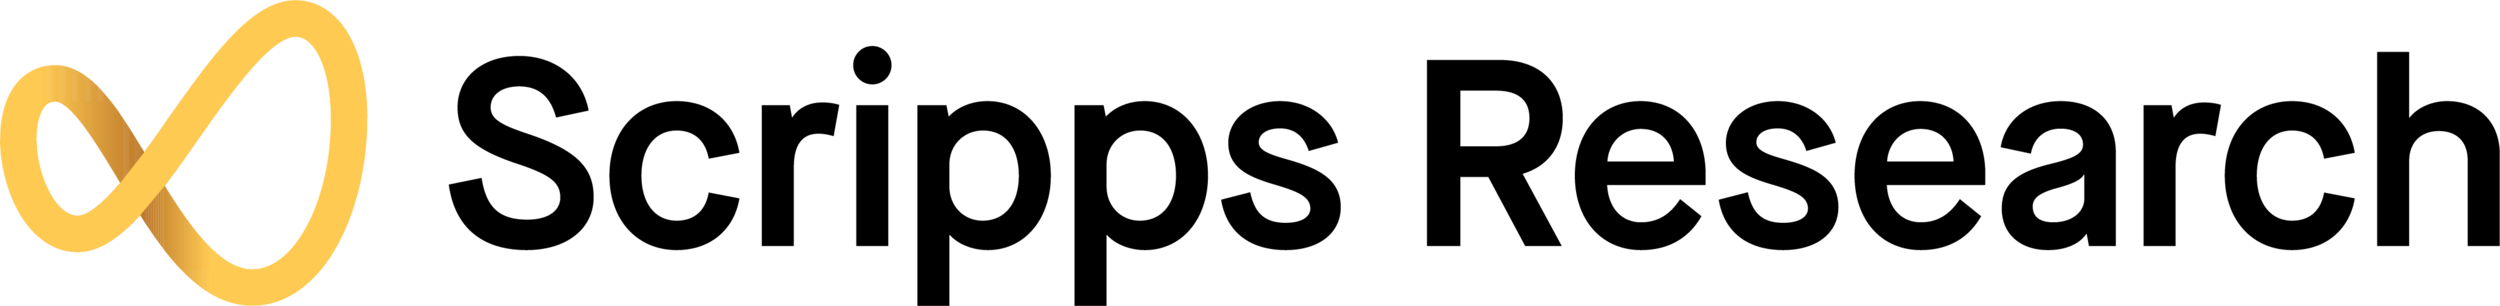 Scripps Research Logo.png